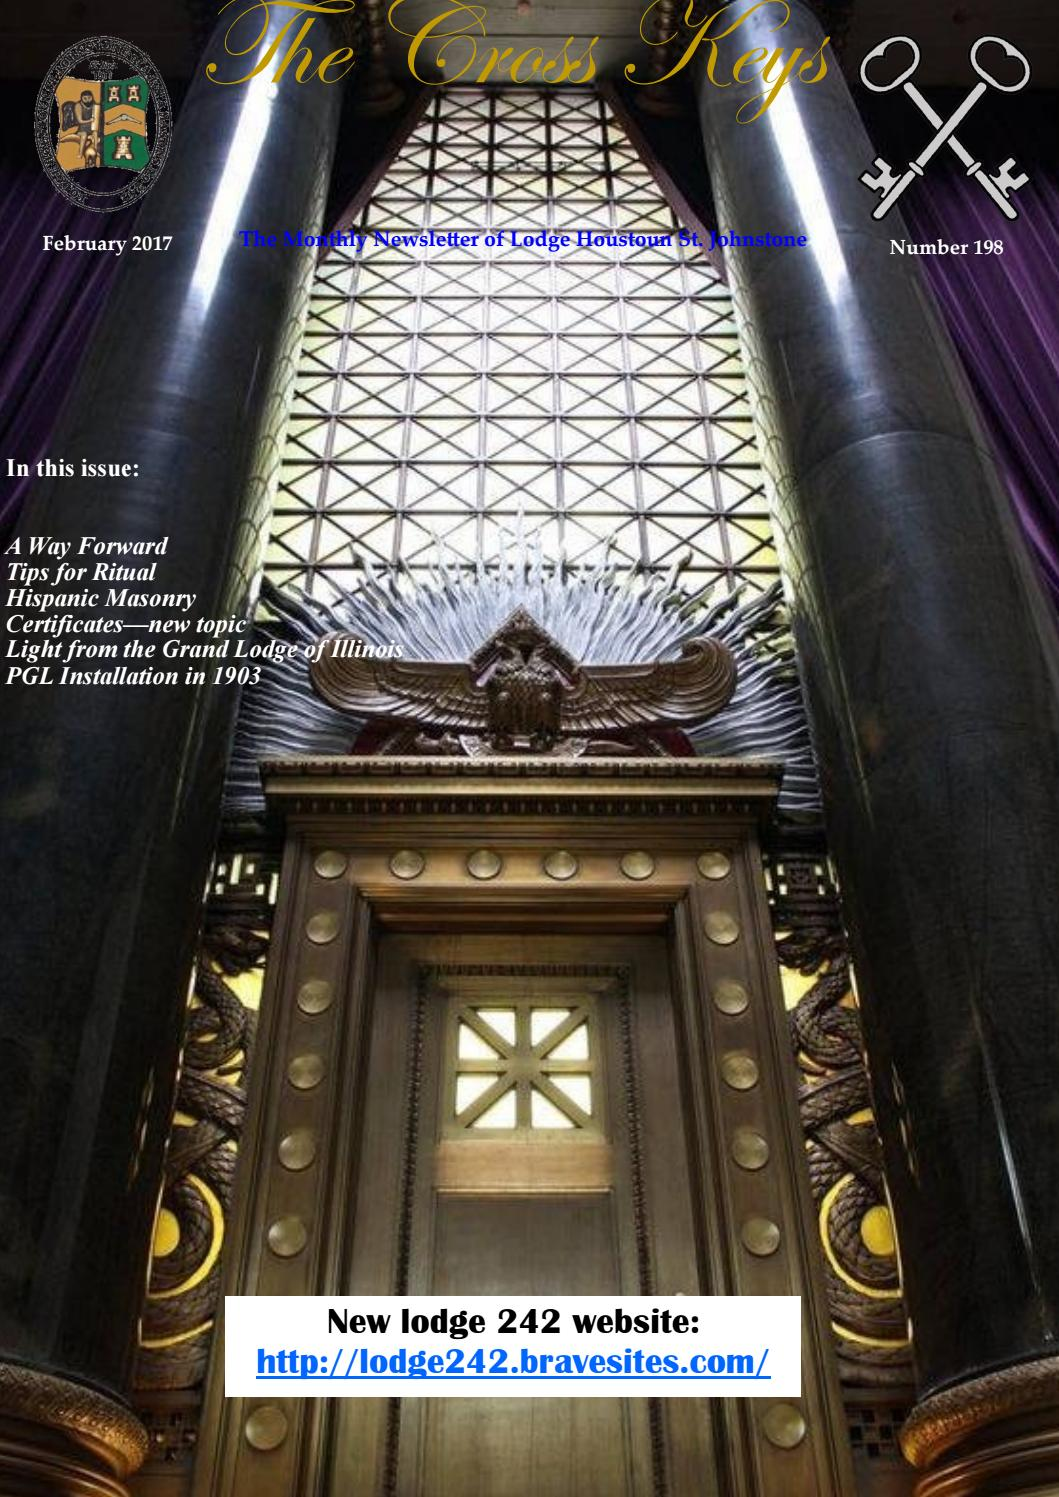 Cross Keys February 2017 (Freemasonry) by Neil Grant Macleod